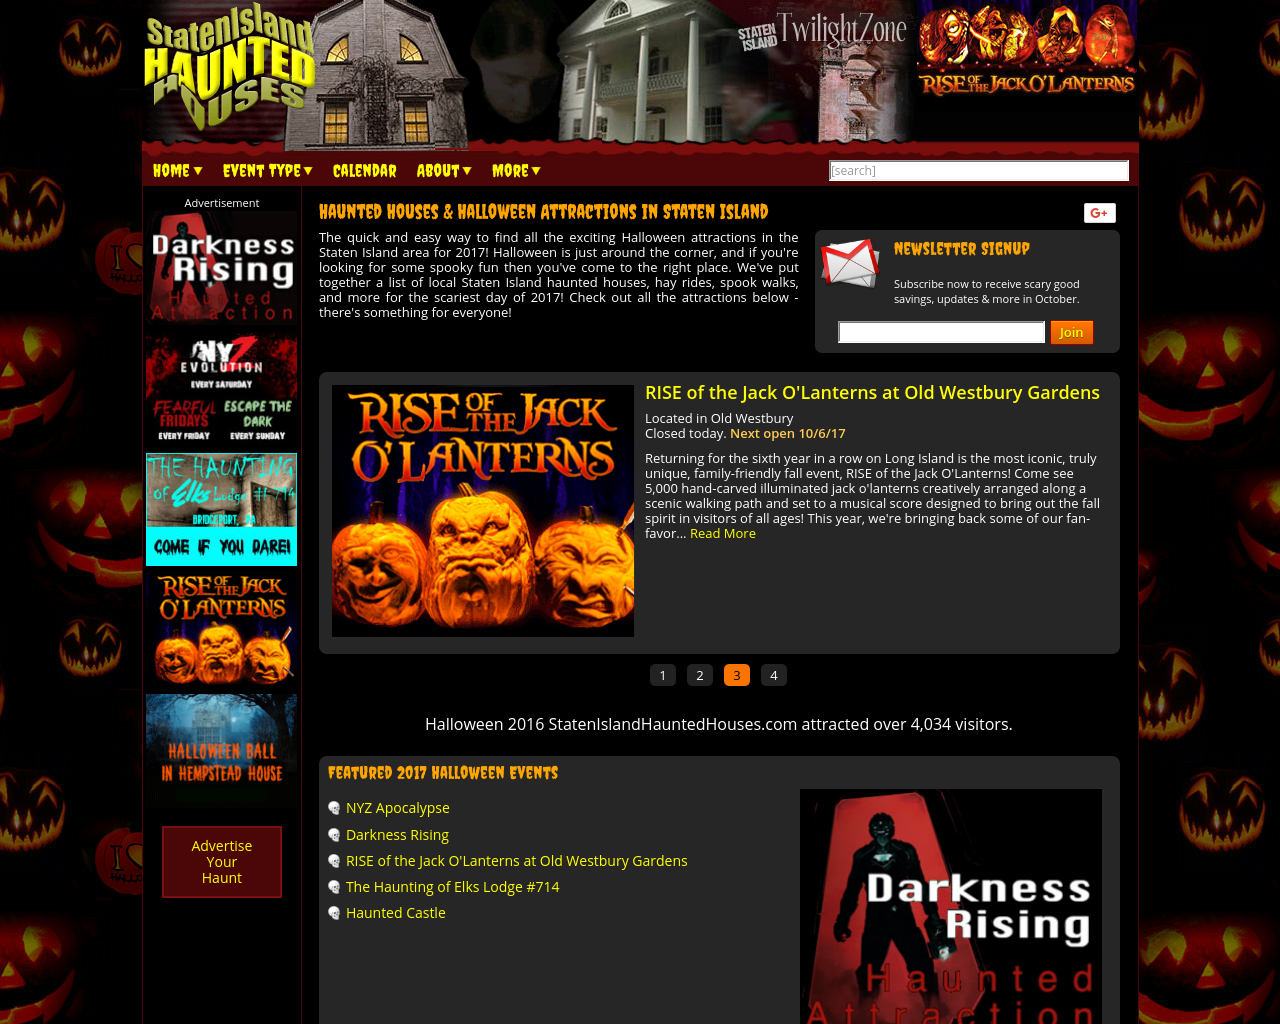 Staten-Island-Haunted-Houses-Advertising-Reviews-Pricing